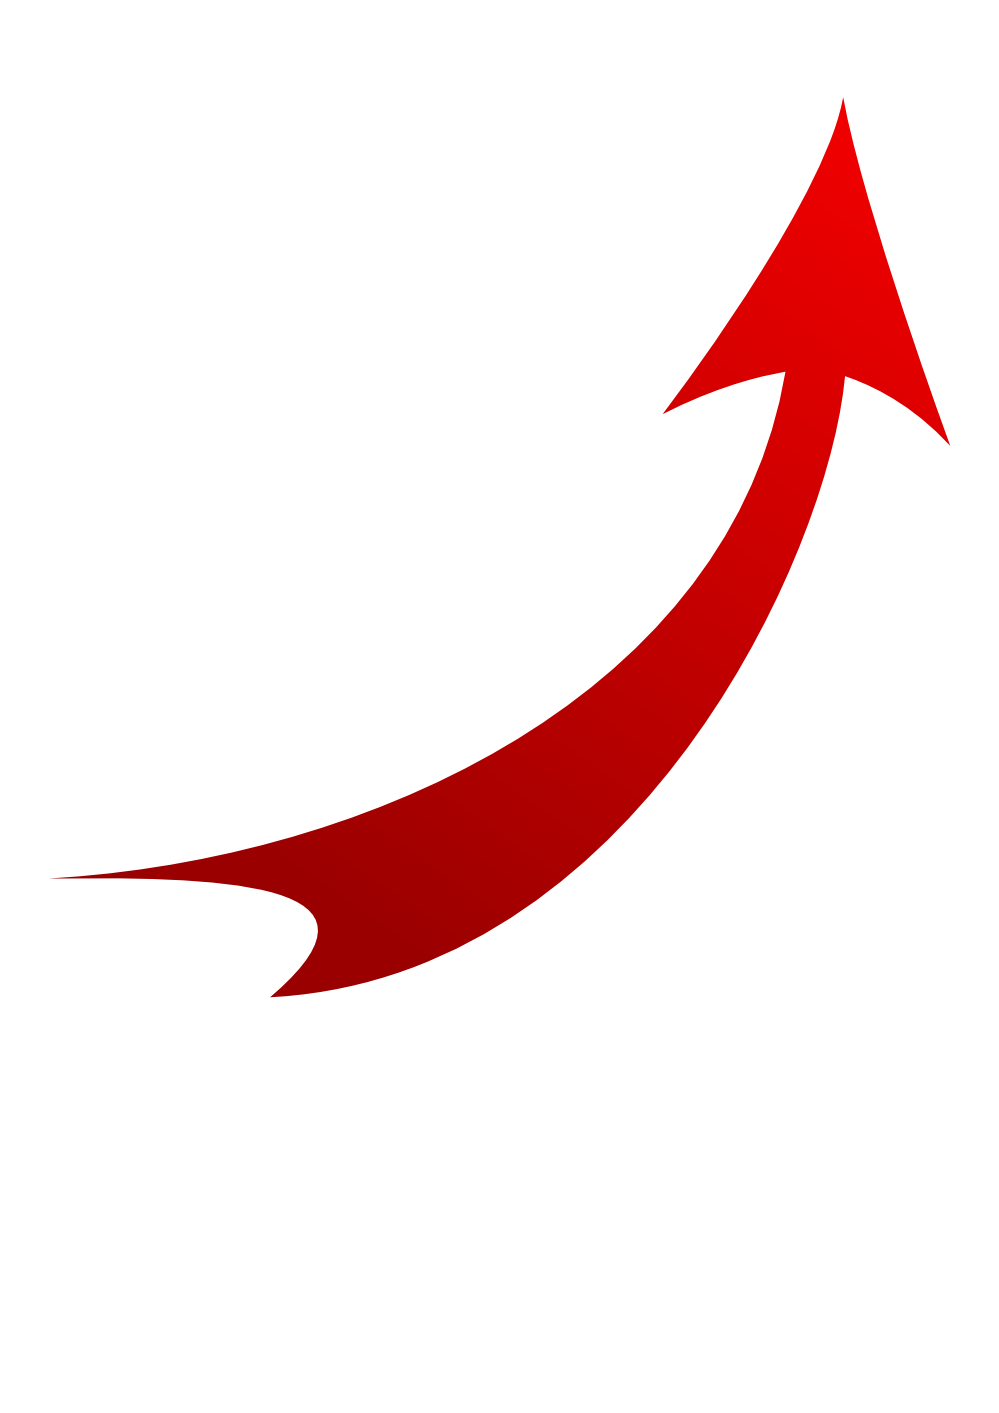 Vector curve maroon. Arrow with curved transparent